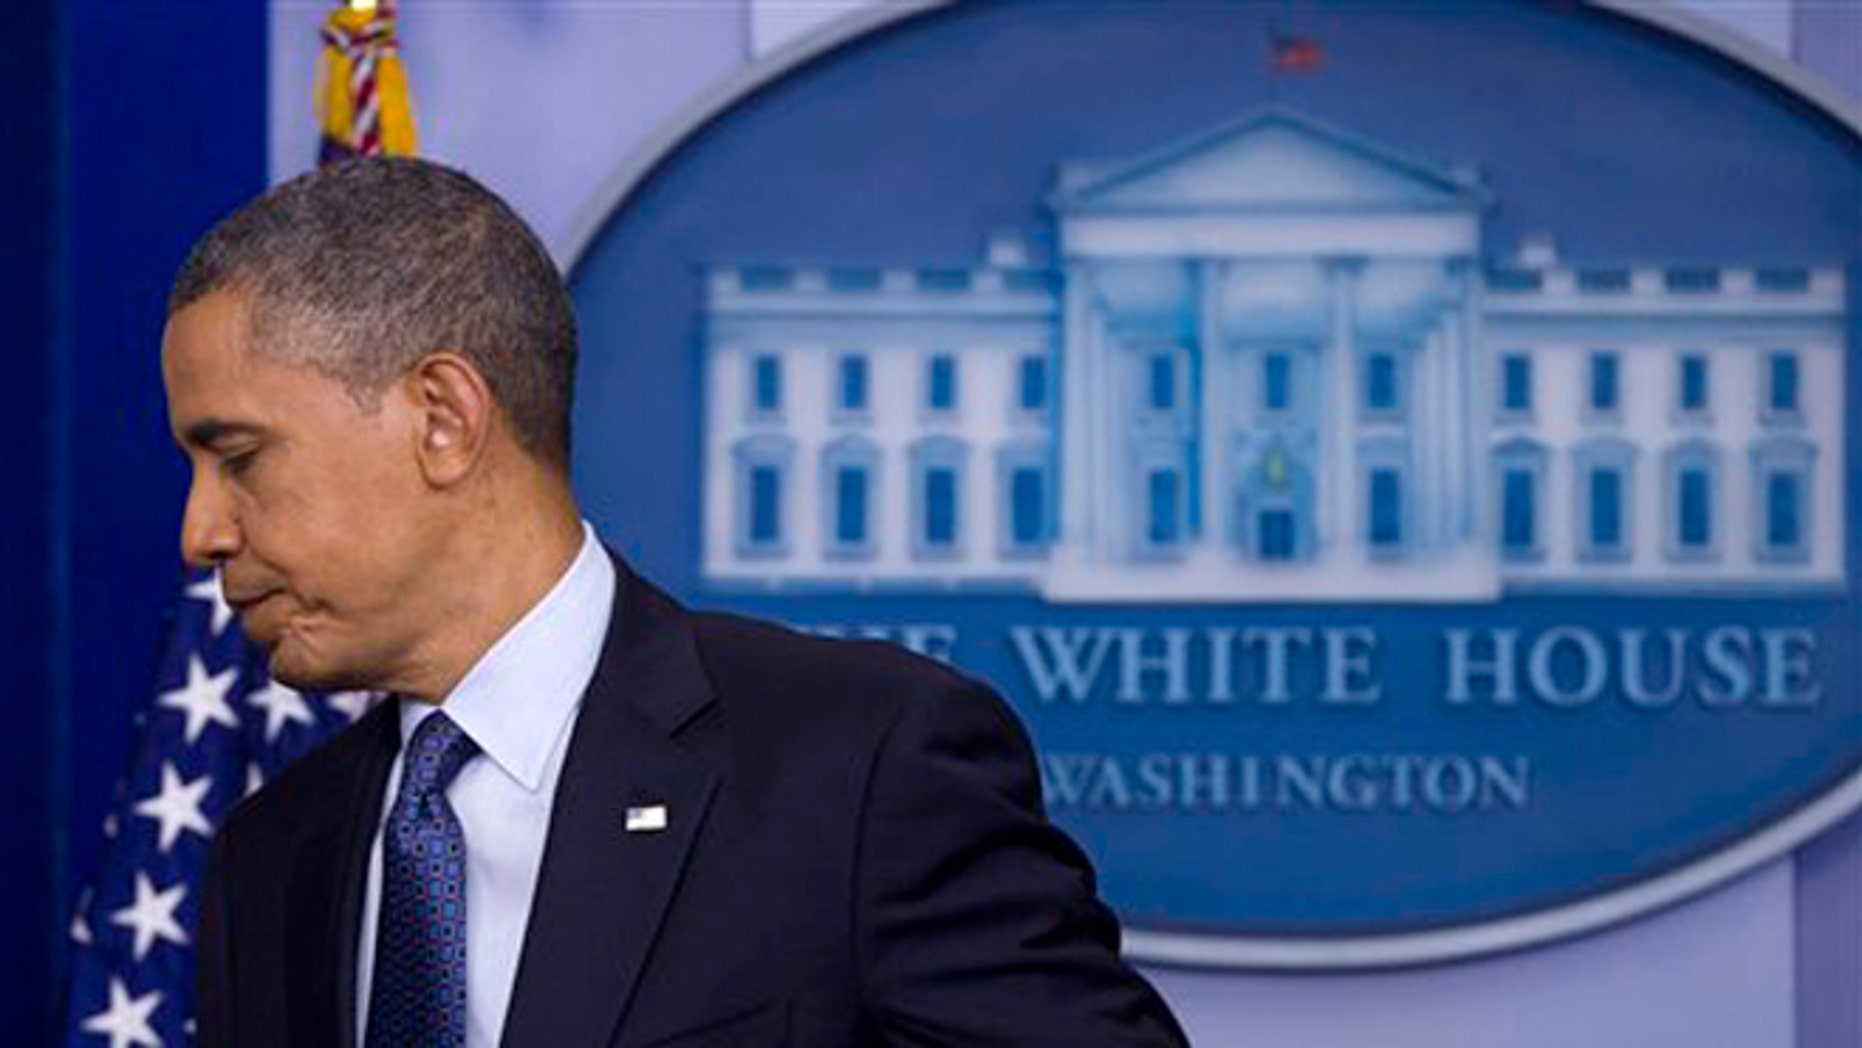 June 8, 2012: President Barack Obama leaves after speaking about the economy in the White House briefing room.